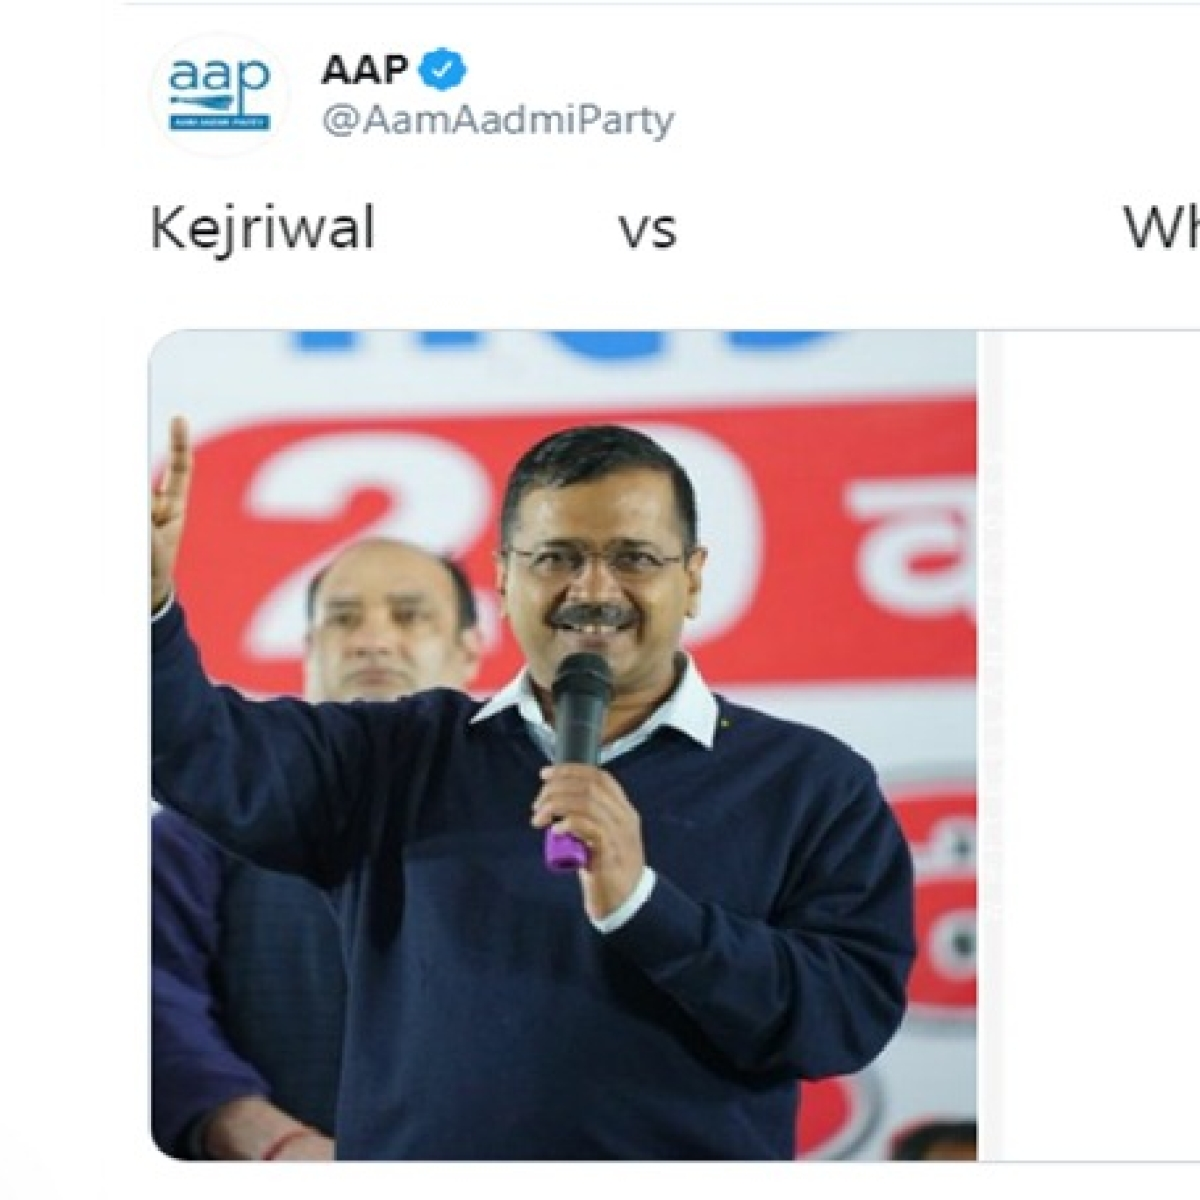 Delhi Elections 2020: AAP asks 'Kejriwal versus who'